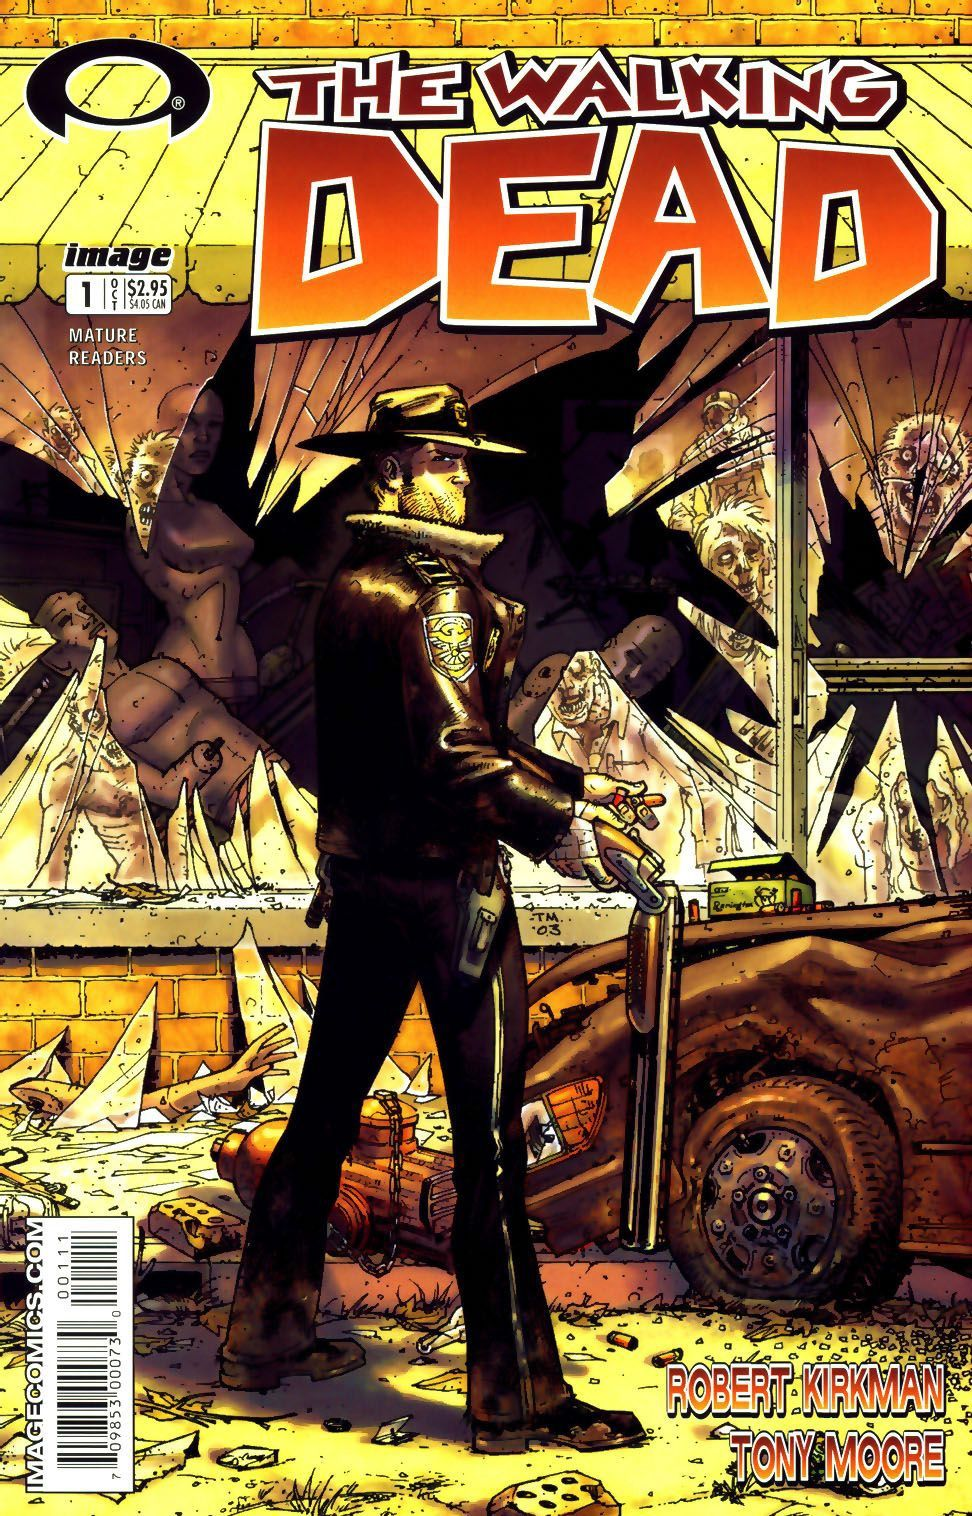 The Walking Dead Comic 1 Pdf